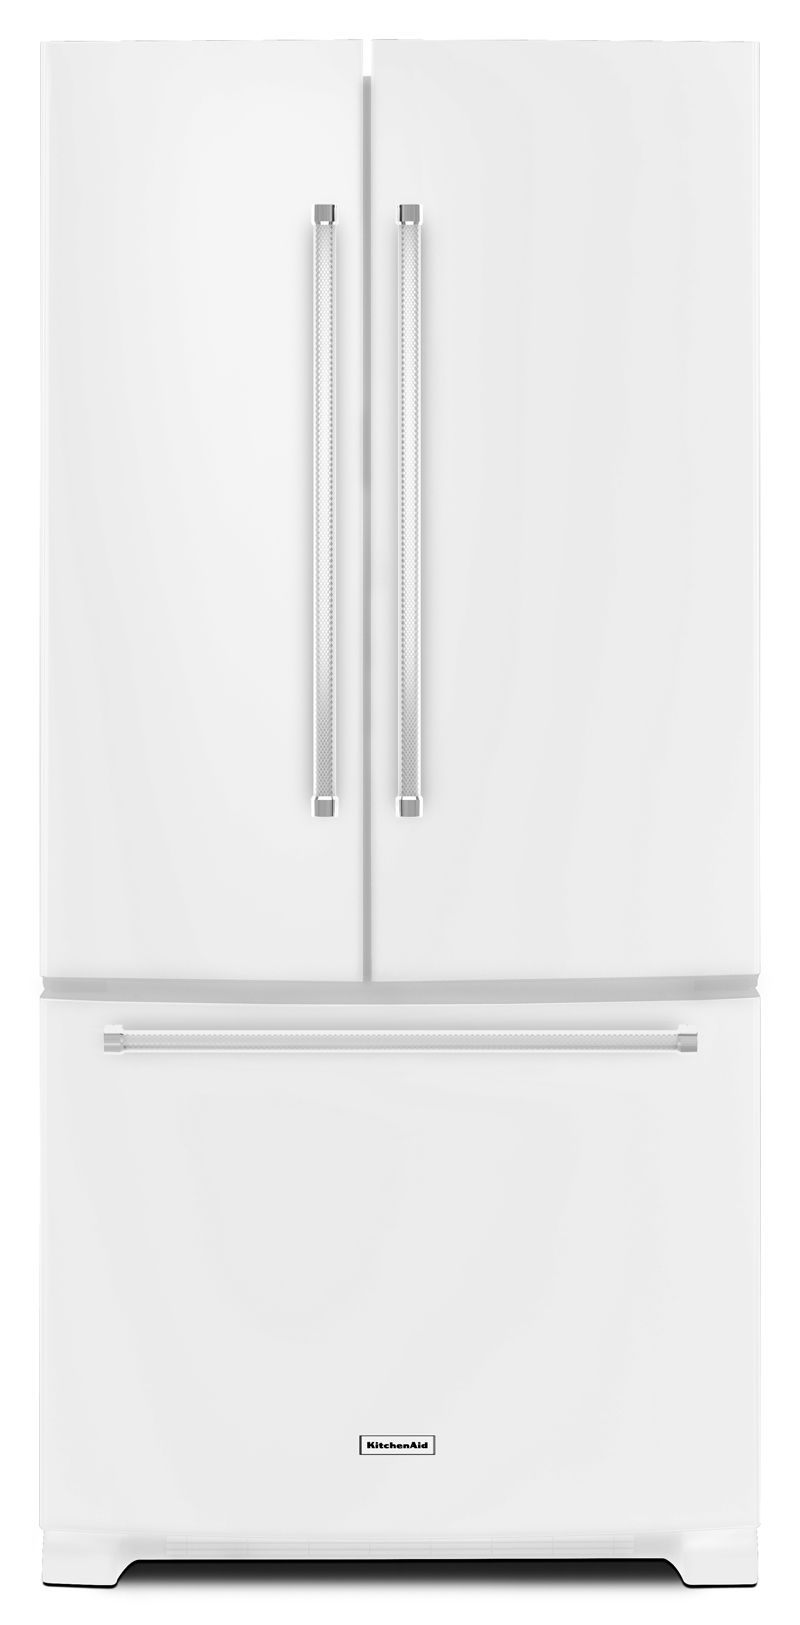 stainless review crazy fridge reviewed steel black door content refrigerator a refrigerators kitchen com kitchenaid the vanity sounds aid five